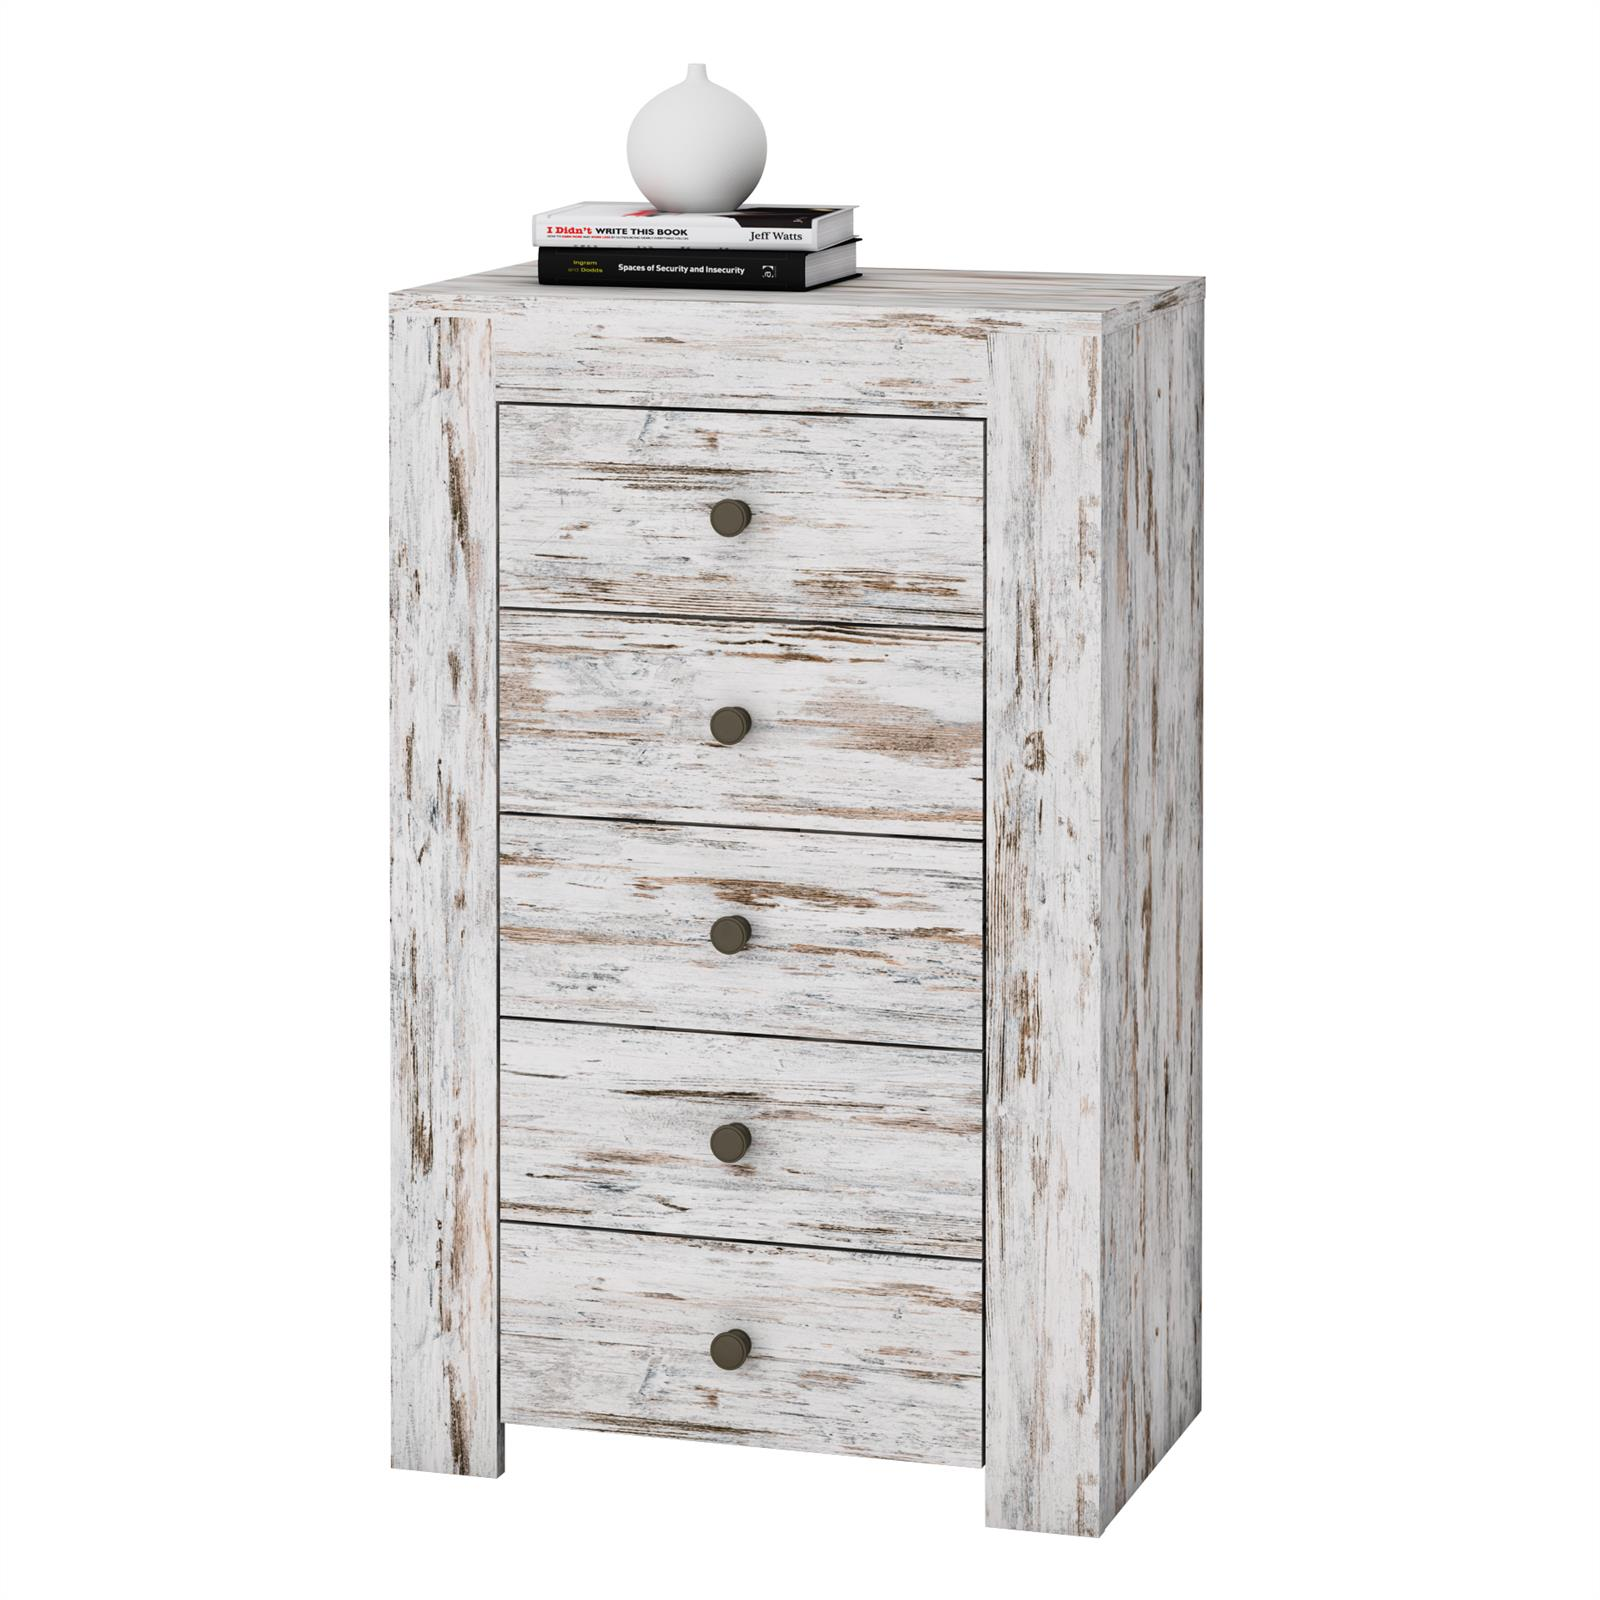 shabby chic kommode livio 60 cm mit 5 schubladen caro m bel. Black Bedroom Furniture Sets. Home Design Ideas